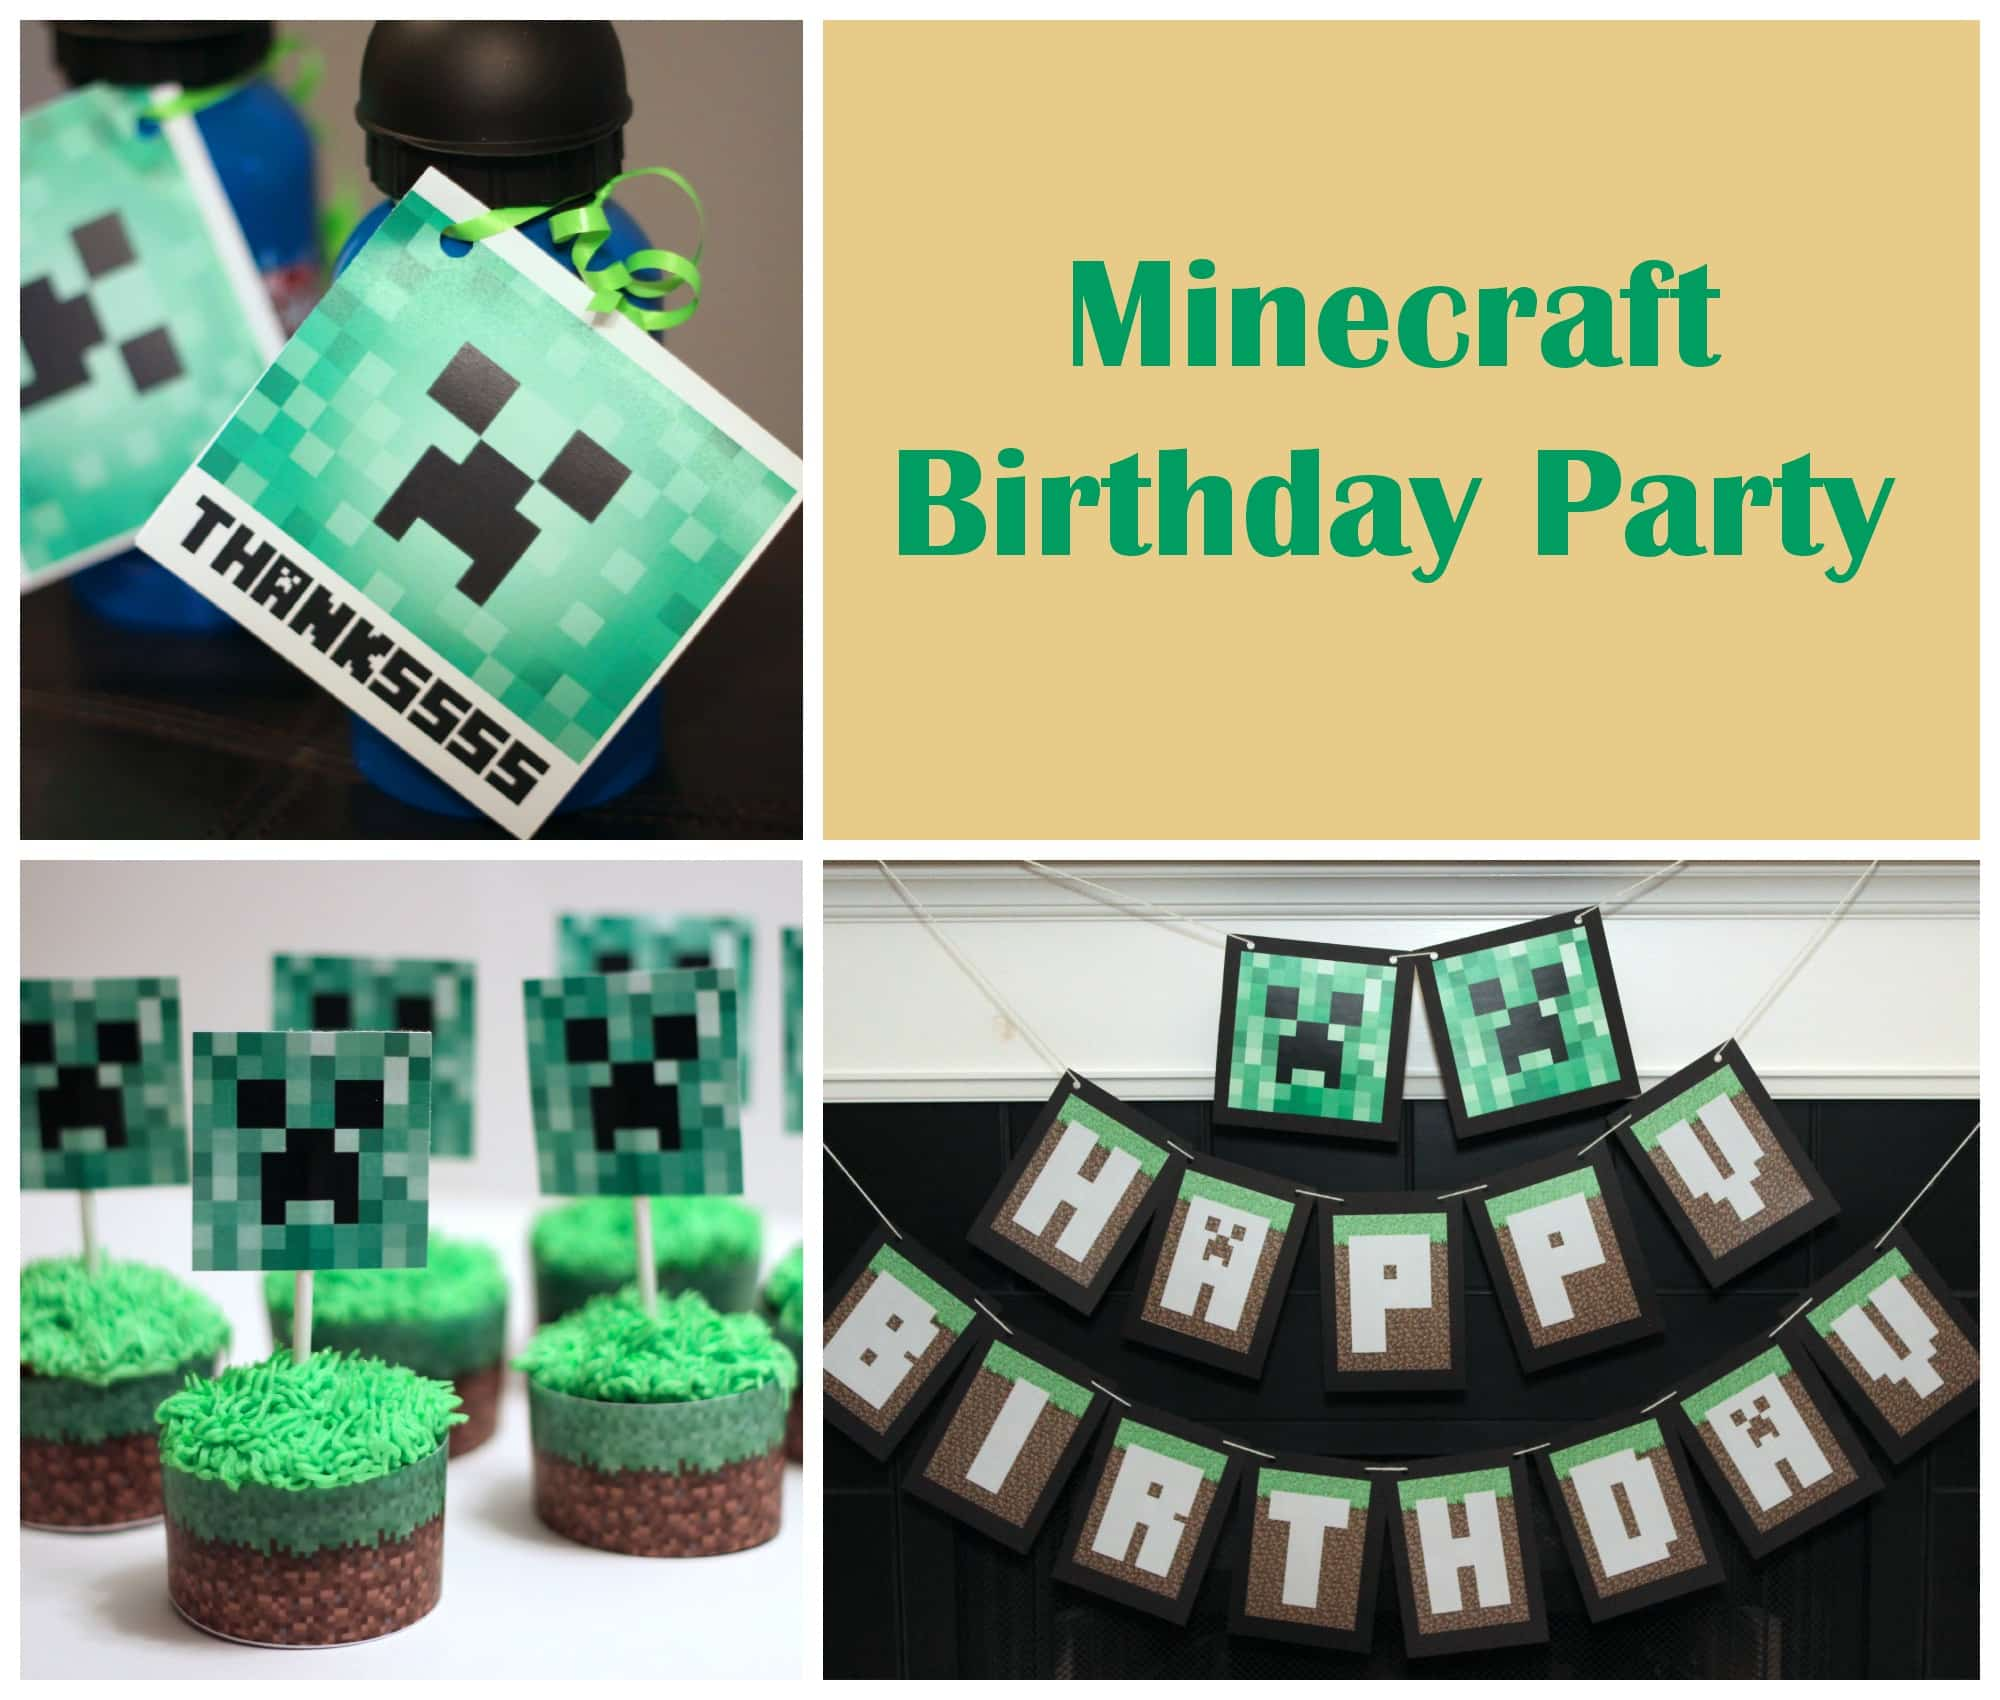 Make Some Cake Minecraft